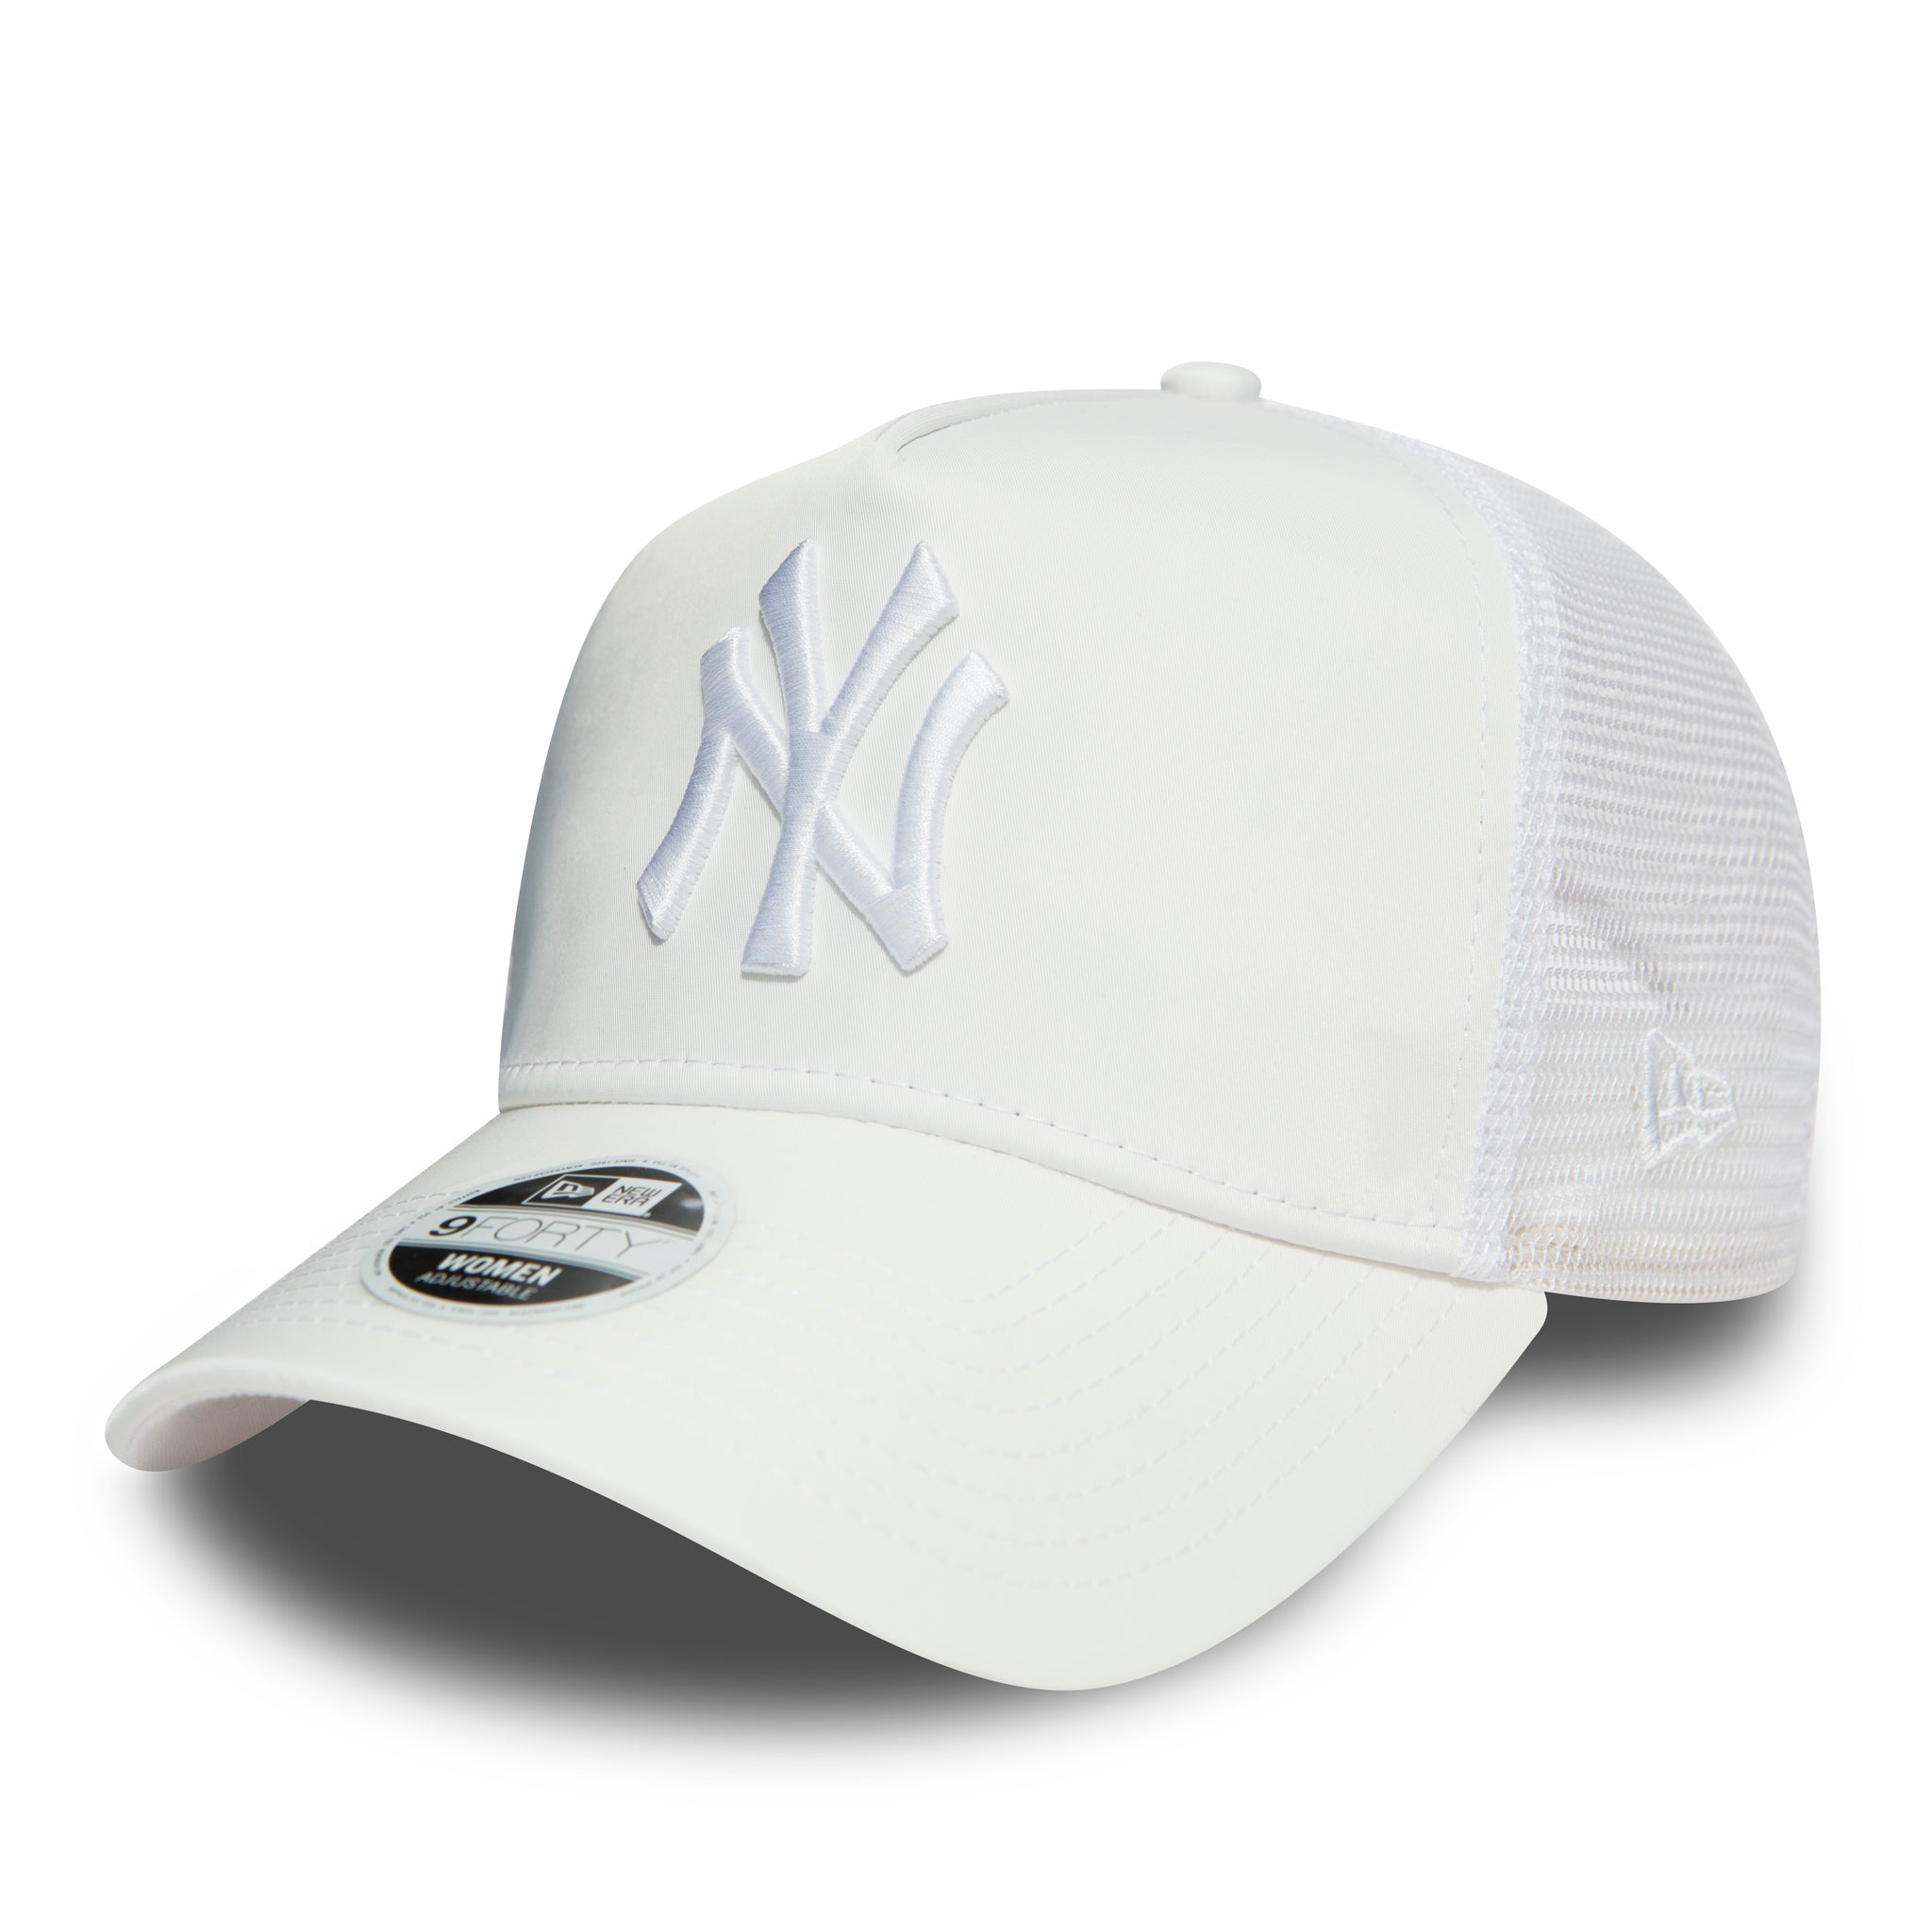 c29f825e27981 NY Yankees Womens New Era 940 White Satin Trucker Cap – lovemycap